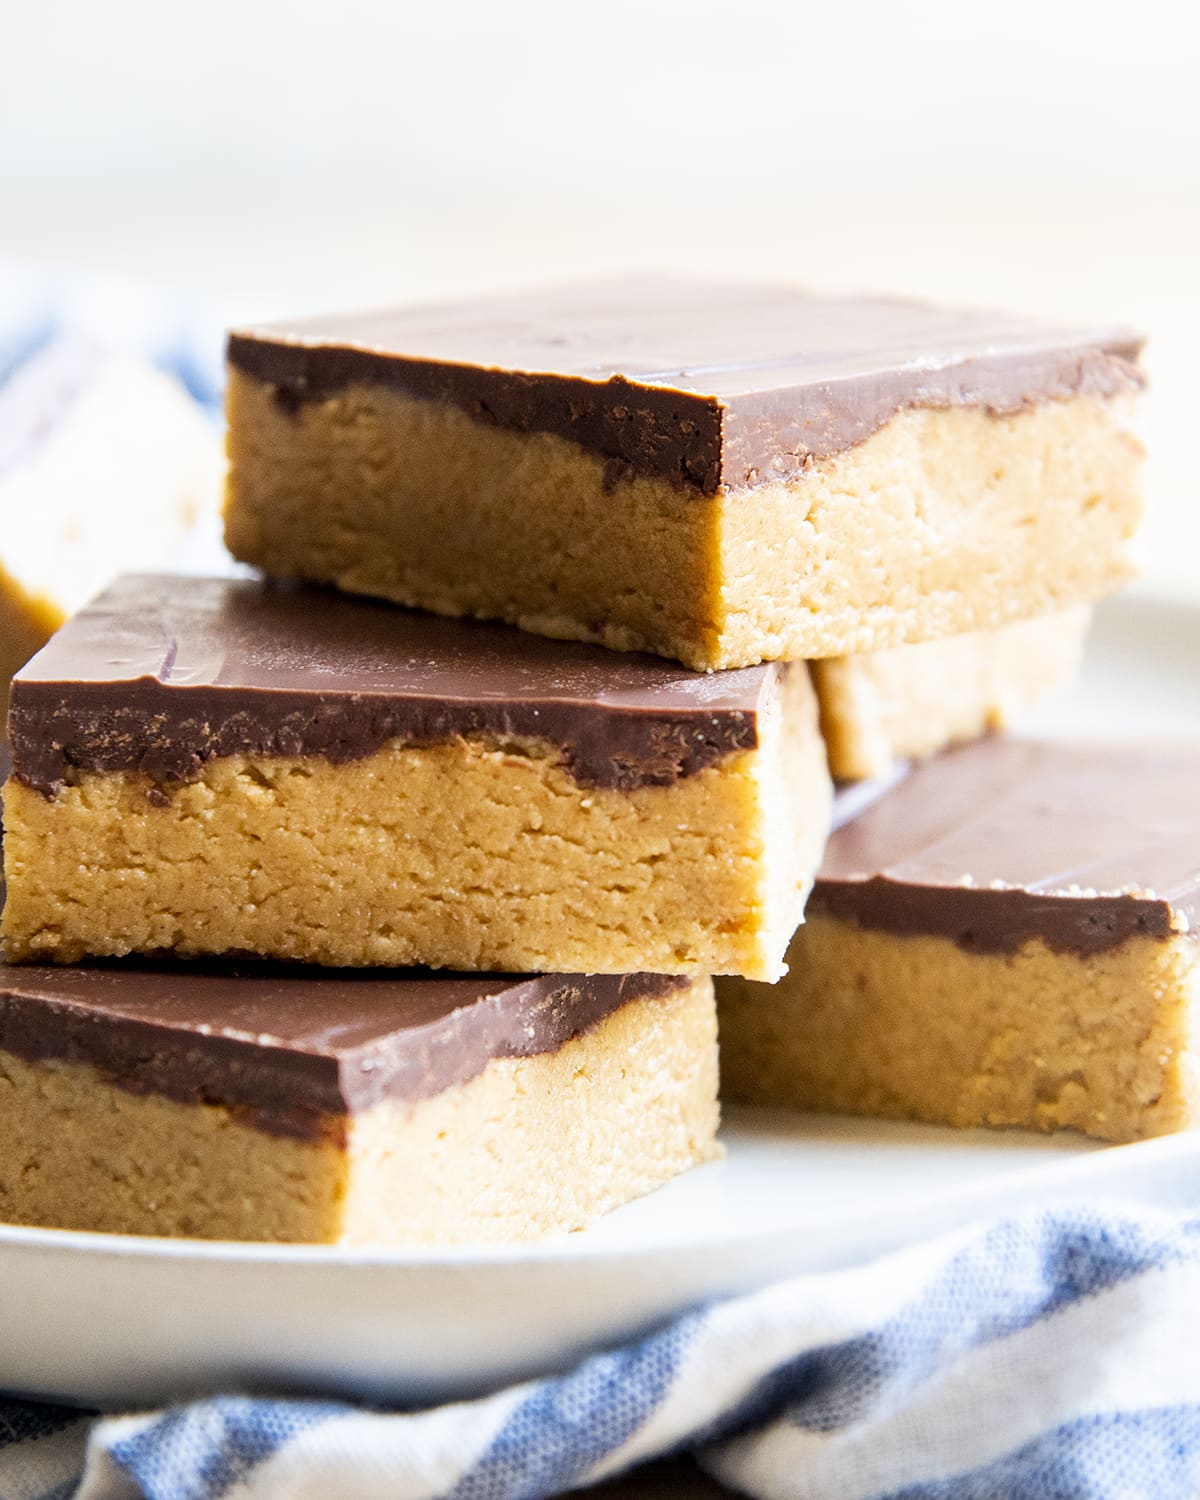 A pile of chocolate peanut butter bars on a plate.